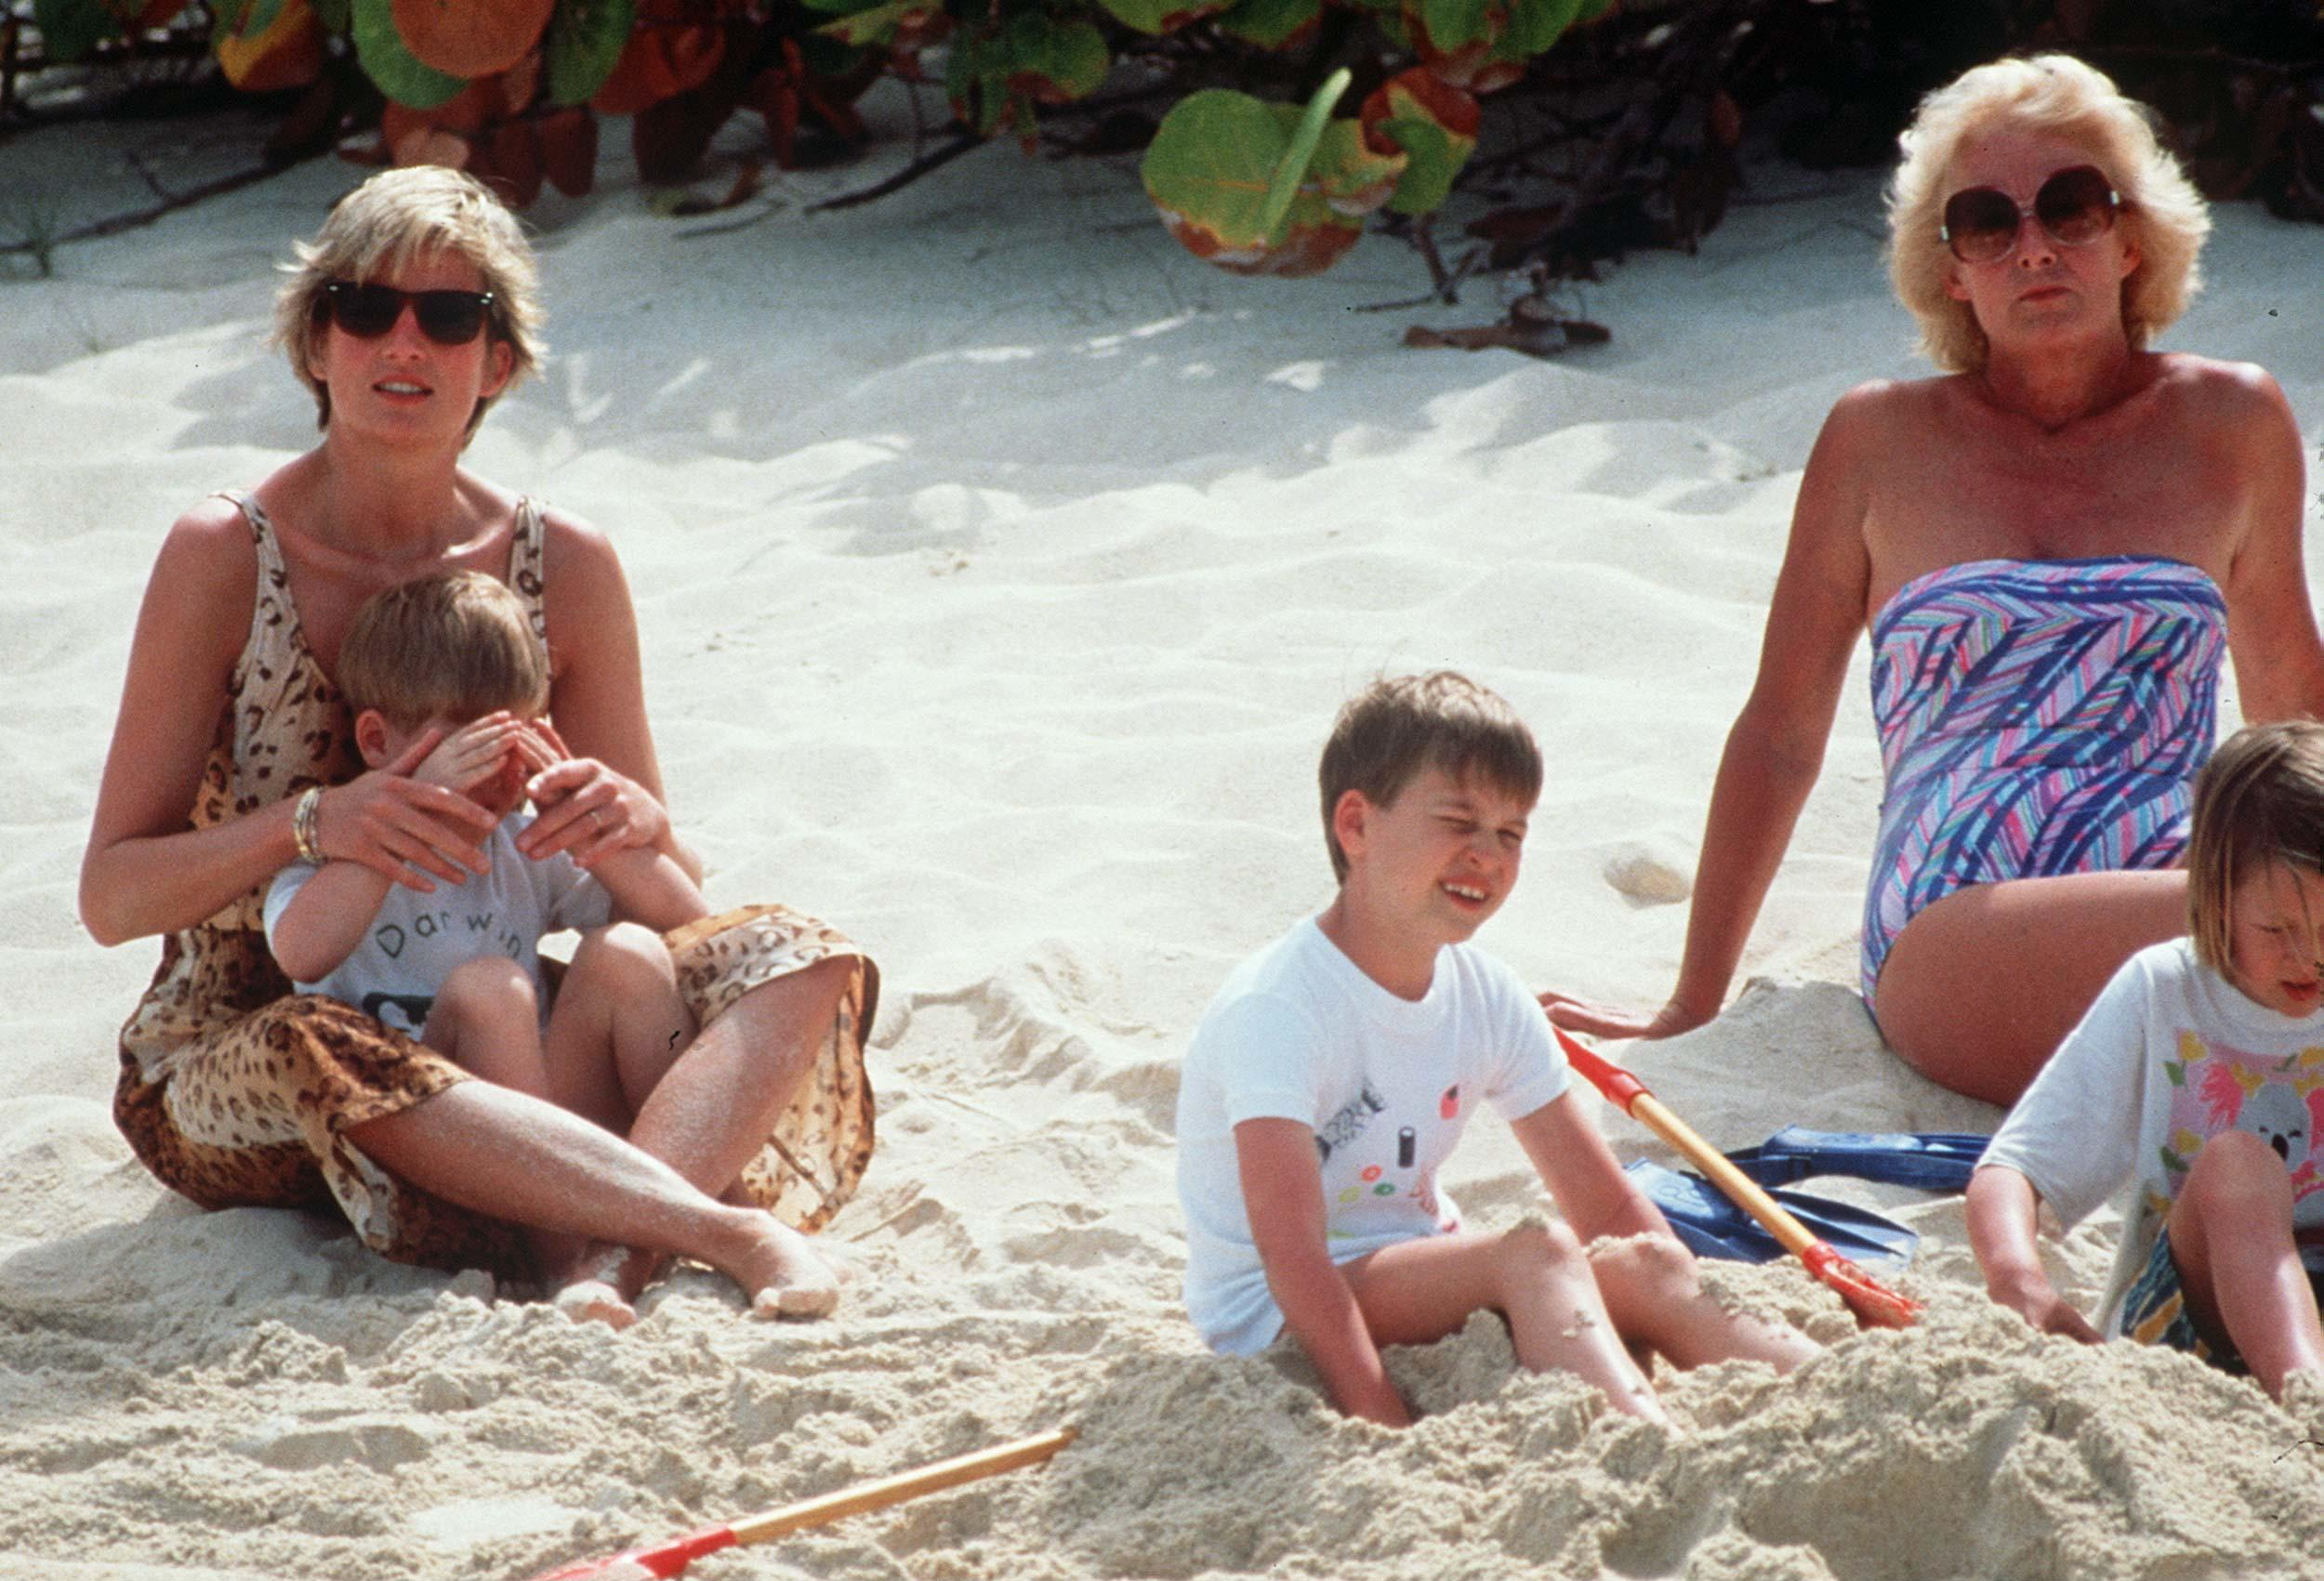 BRITISH VIRGIN ISLANDS - APRIL 11:  Princess Diana With Her Mother Frances Shand-kydd And Her Sons, William And Harry, Enjoying A Spring Holiday On The Island Of Necker. Prince Harry Is Sitting On His Mother's Lap.  (Photo by Tim Graham/Getty Images)